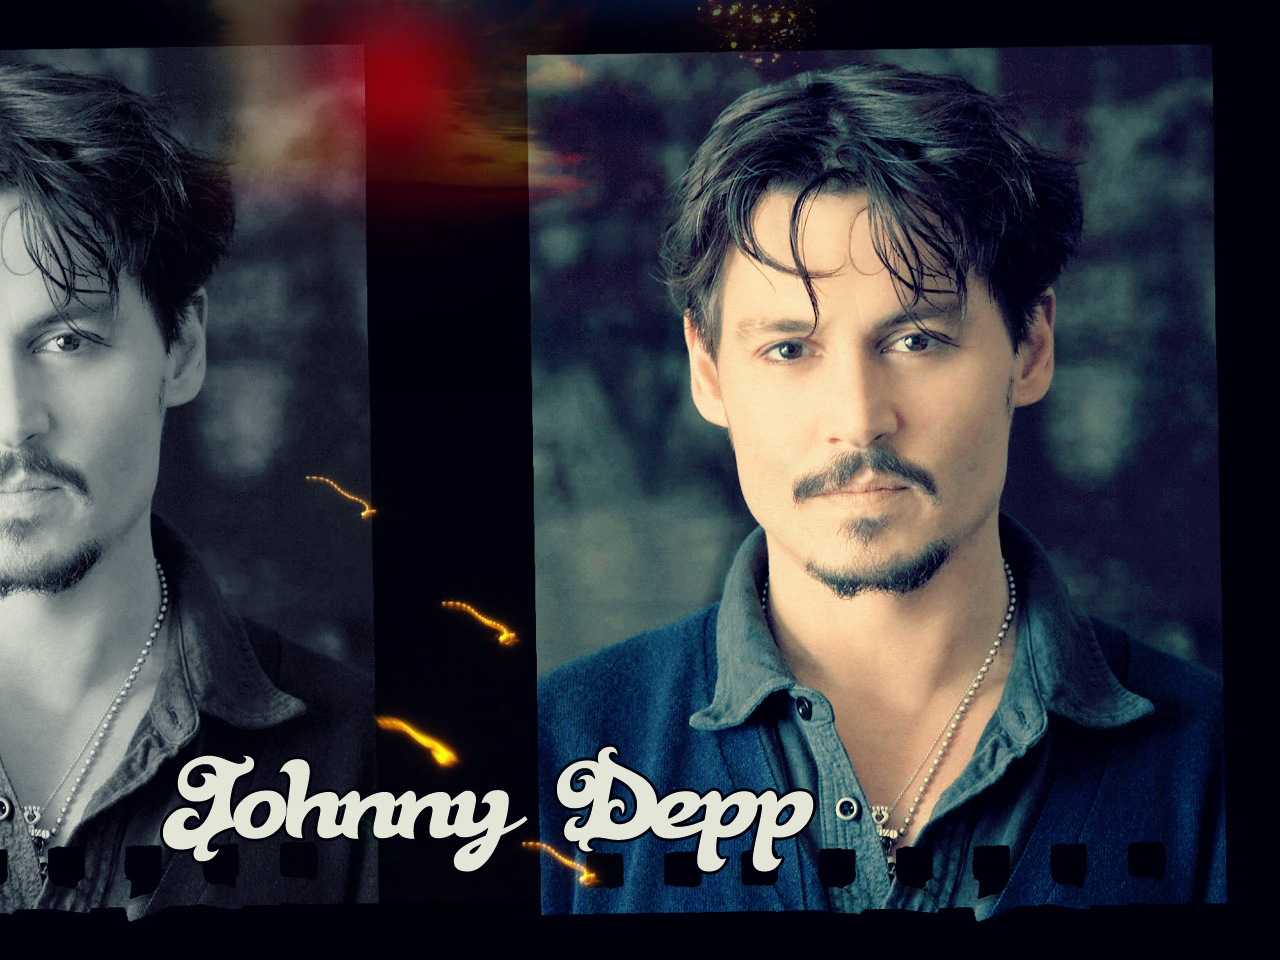 JD wallpaper - Johnny Depp 1280x960 1024x768 800x600